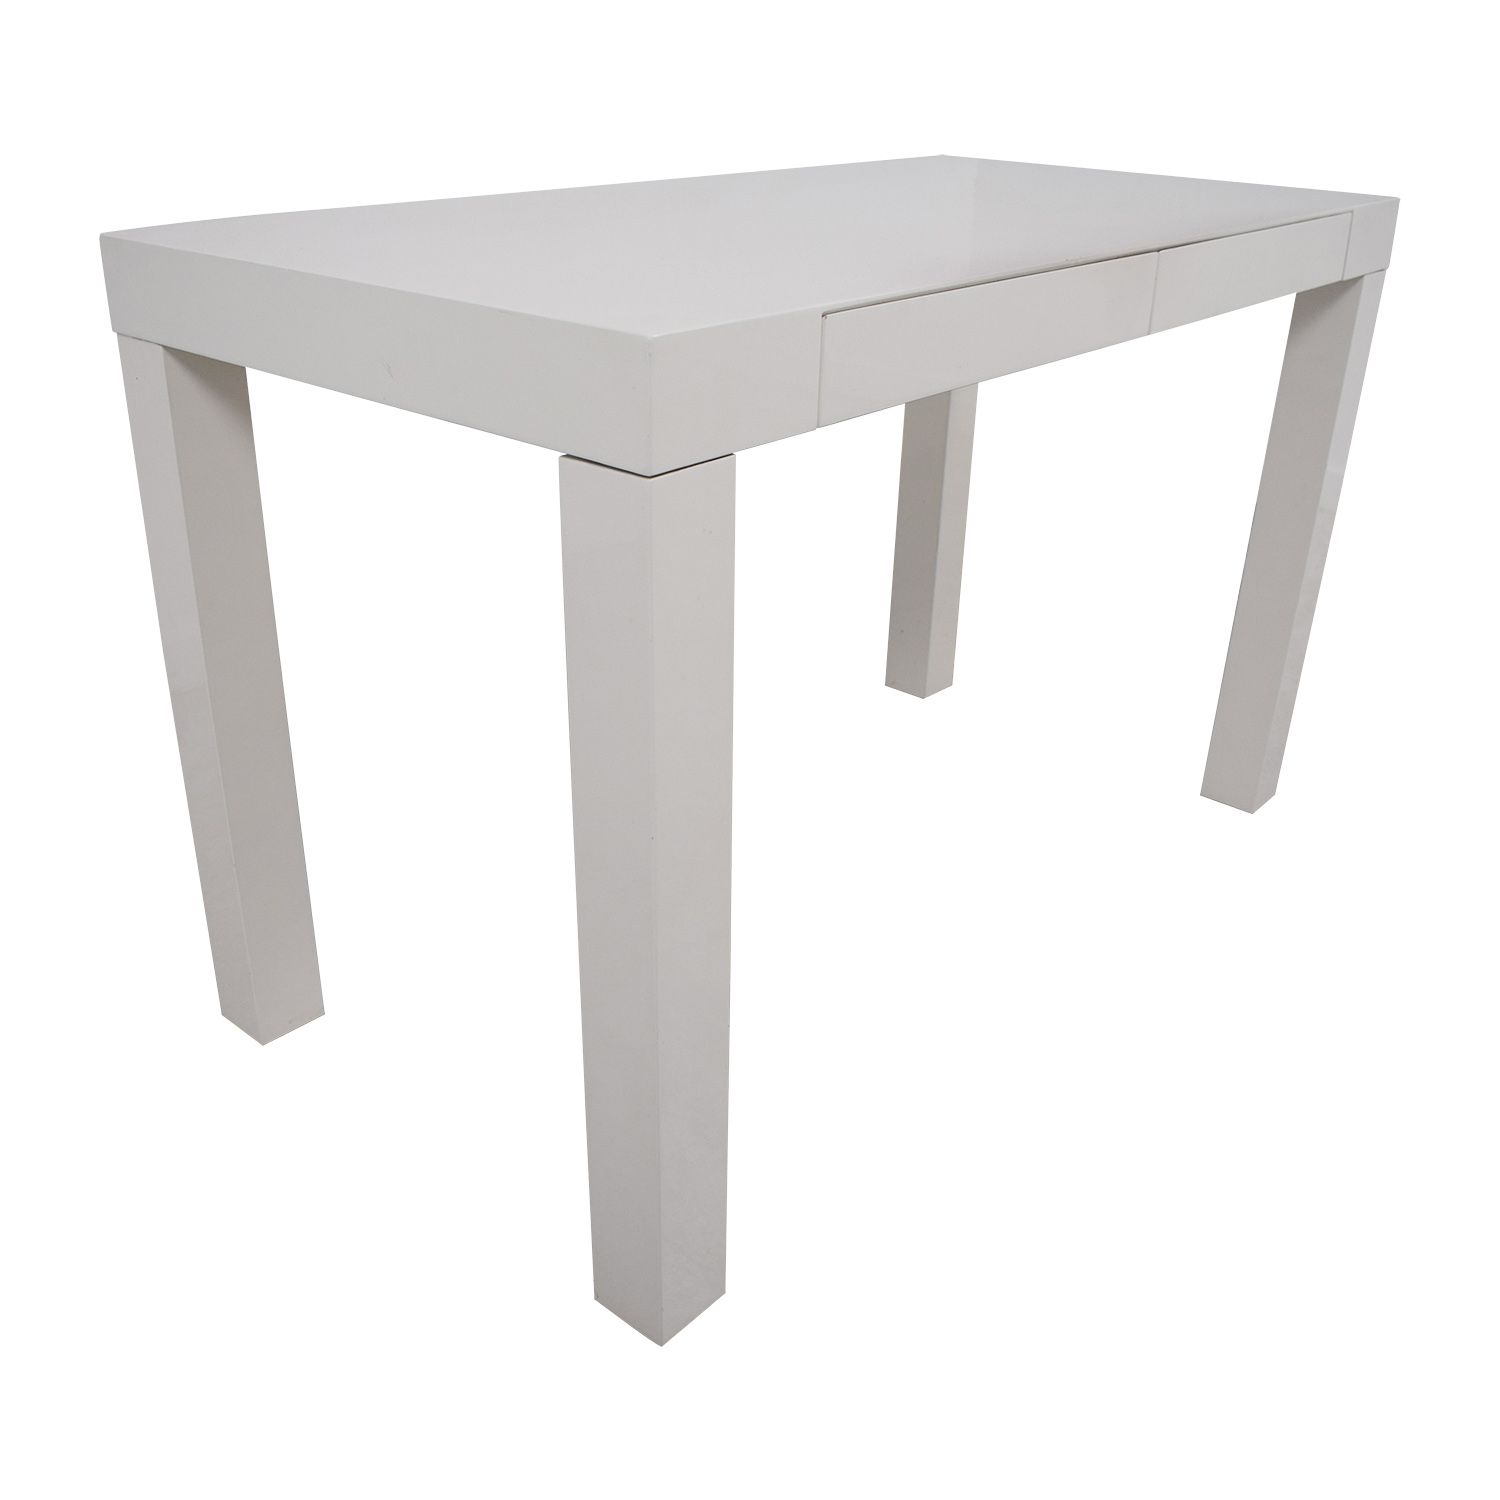 73% OFF - West Elm West Elm Pasons White Two-Drawer Desk / Tables